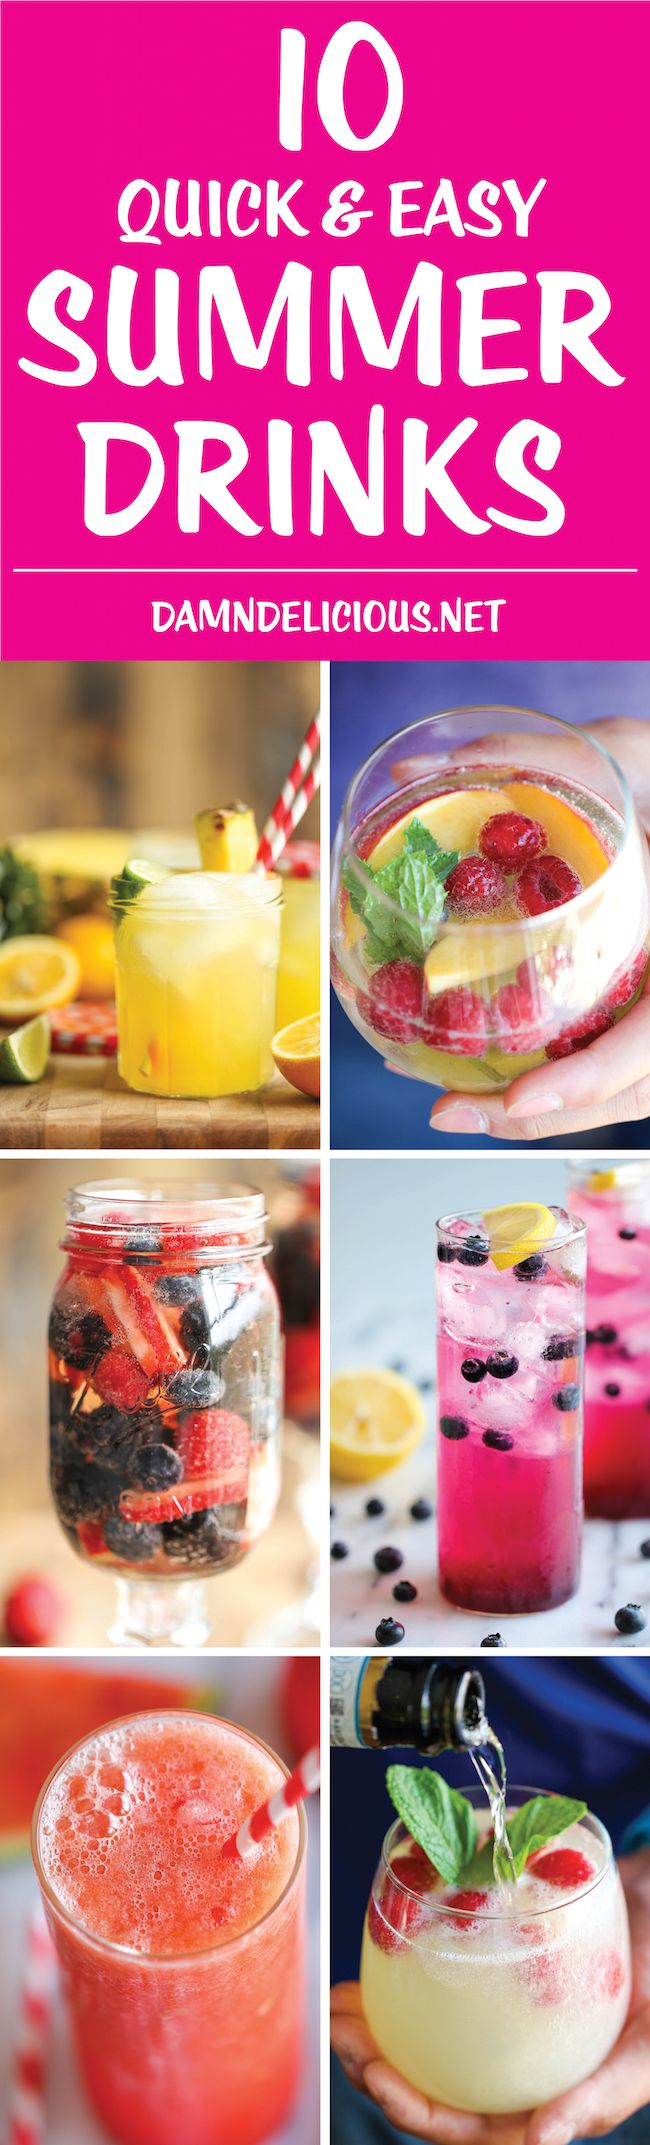 10 Quick And Easy Summer Drinks Health Diet Women 39 S